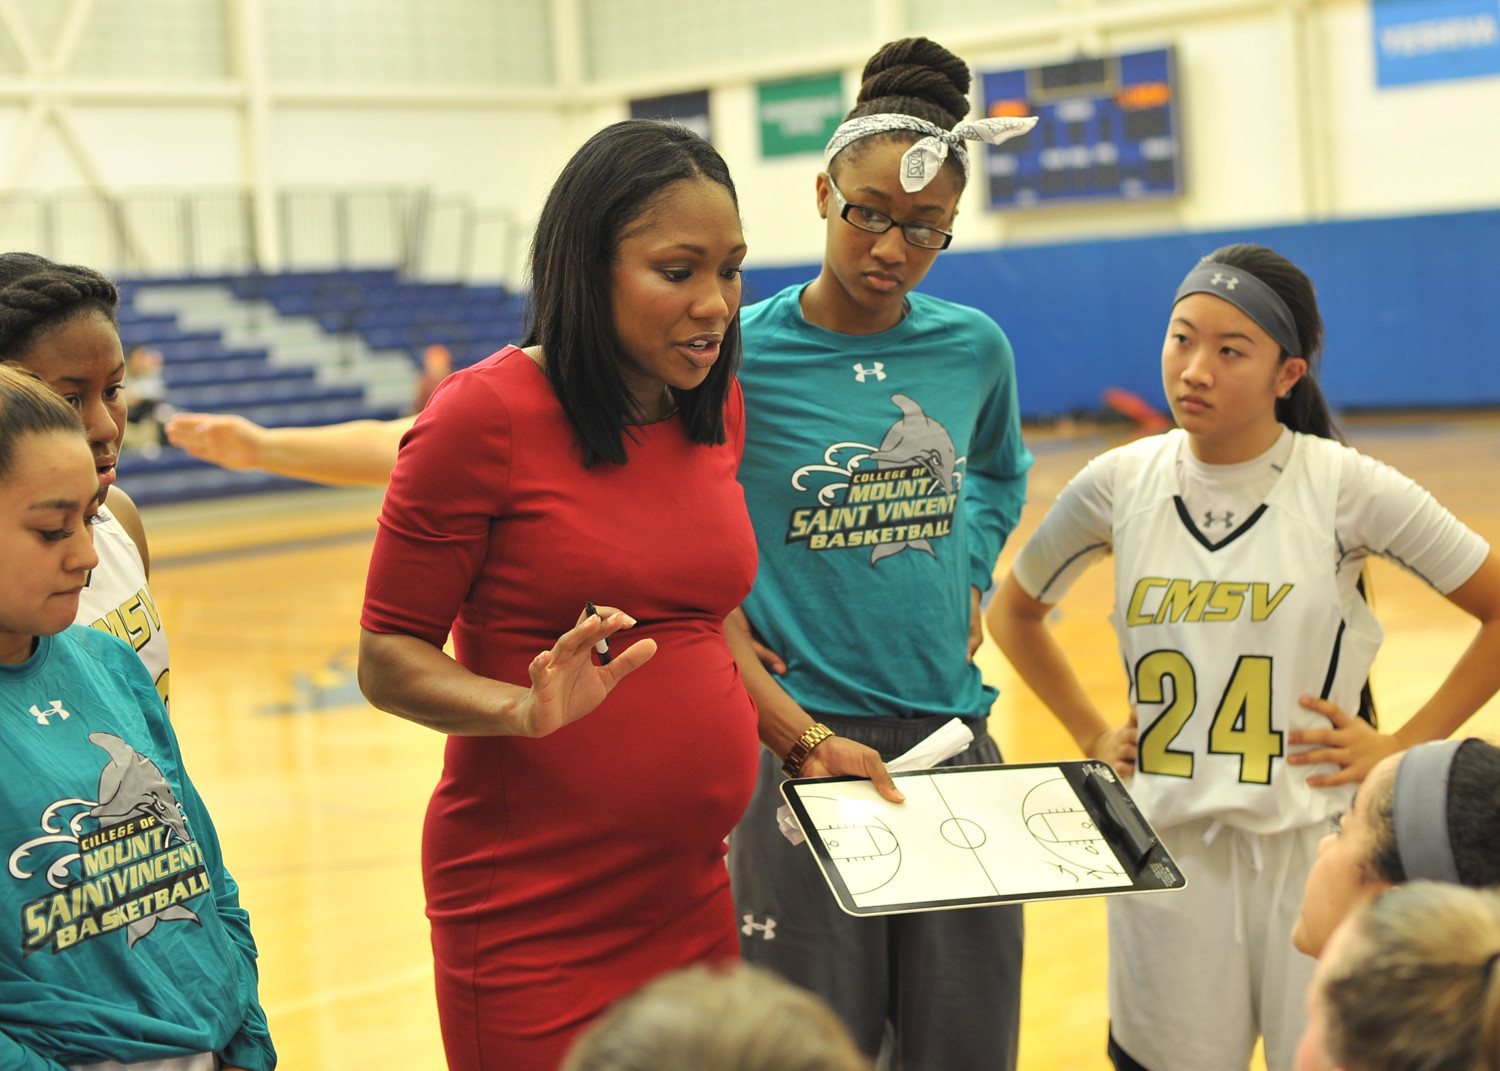 New Mount Saint Vincent women's head basketball coach Tiffany Smart discusses strategy with her Dolphins as she notched a win in her first home game of the season.